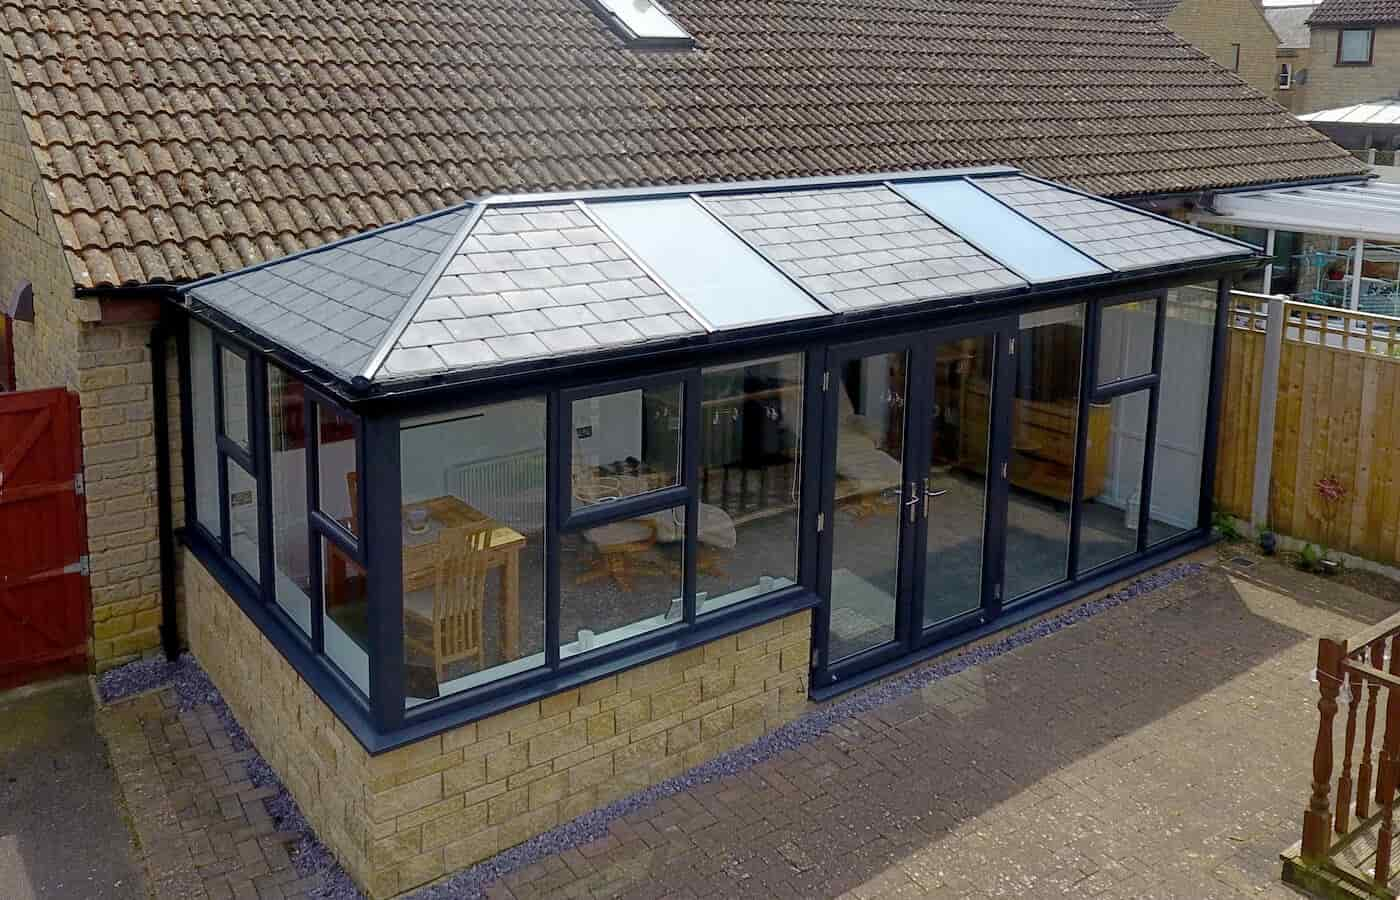 Large conservatory with a grey tiled roof